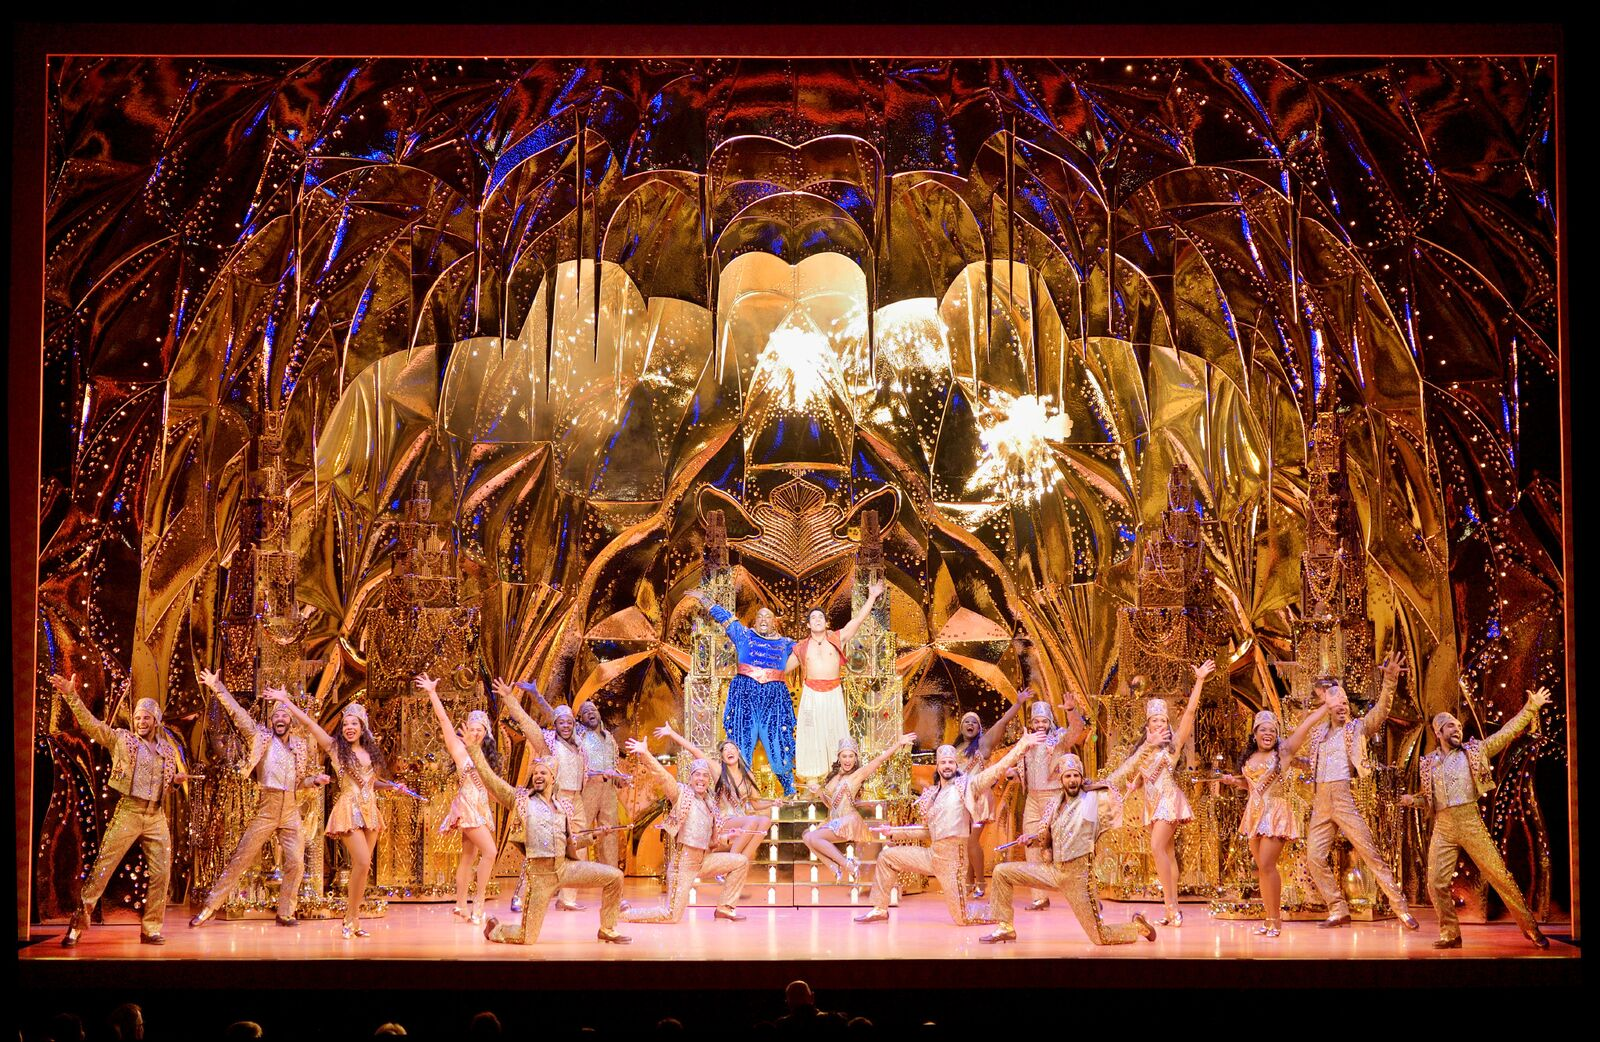 s1-friend-like-me-1-aladdin-north-american-tour-original-cast-photo-by-deen-van-meer_preview